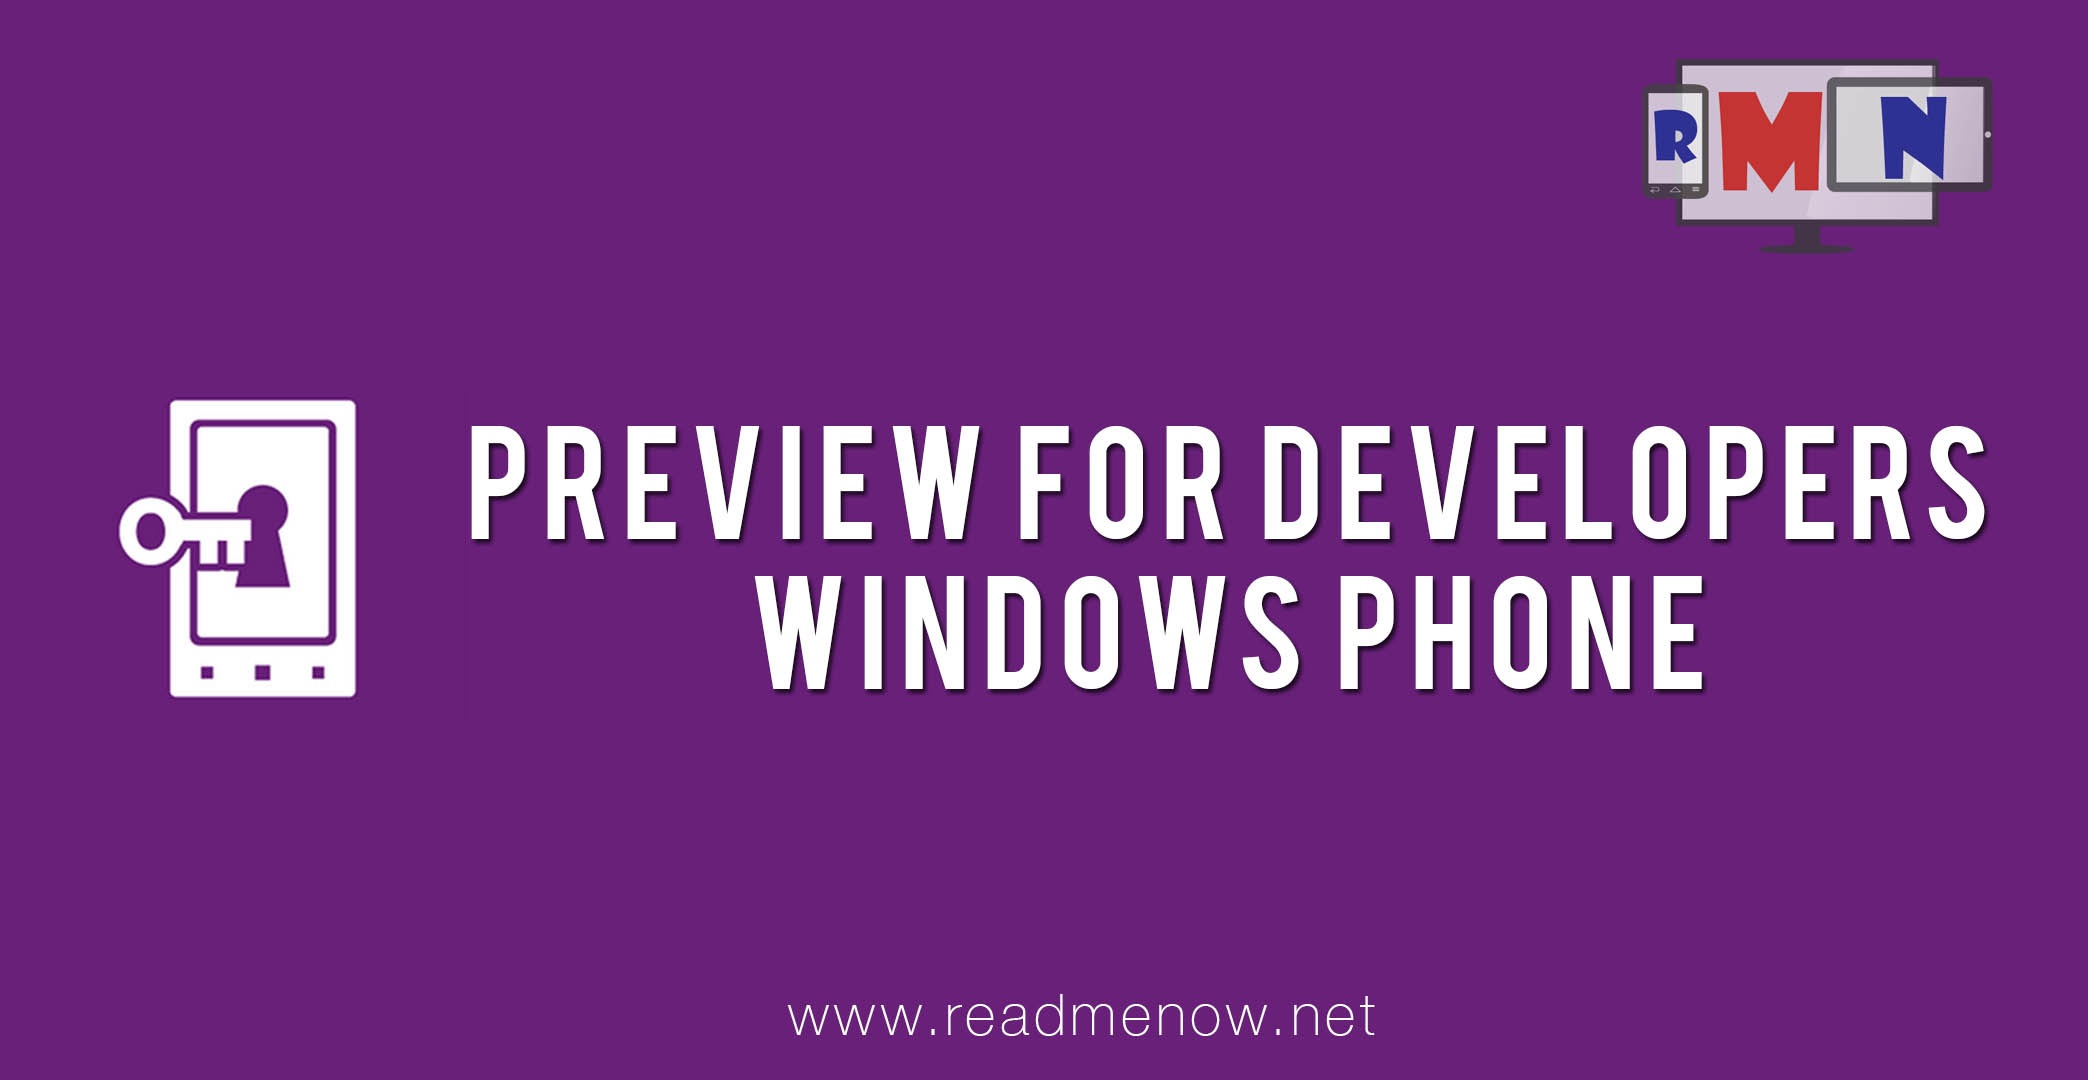 Preview For Developers Windows Phone Guide